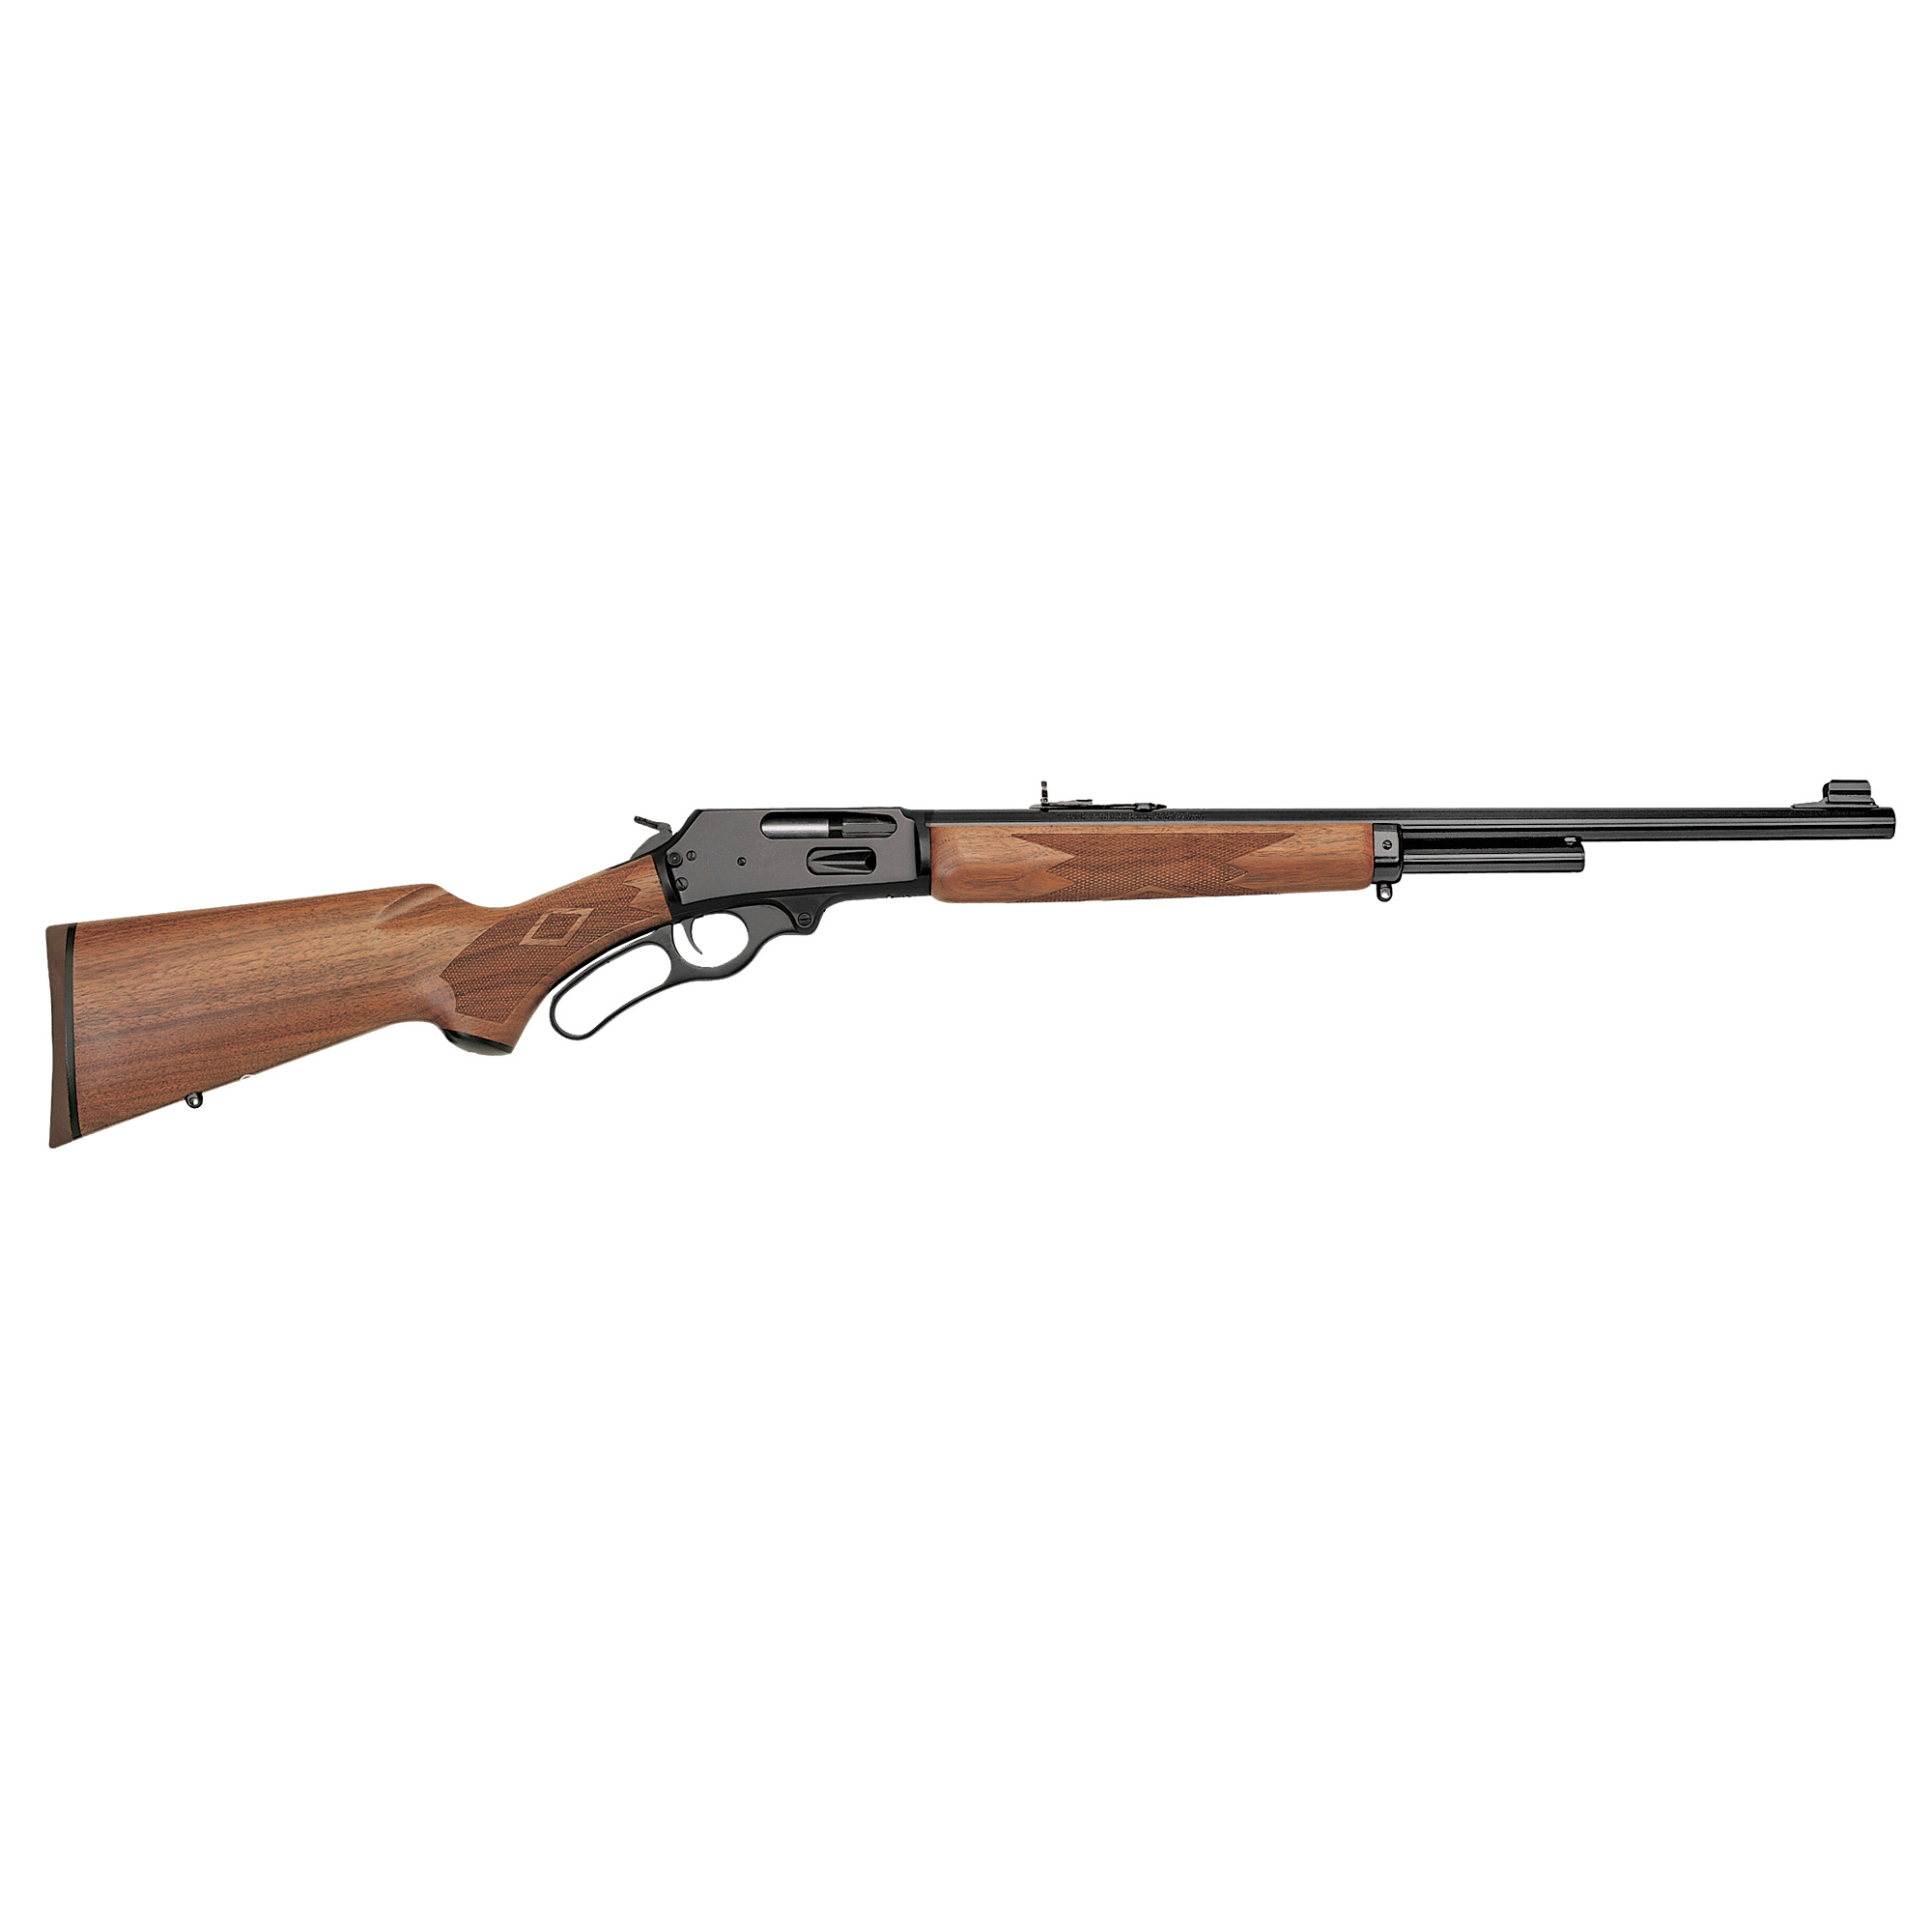 """It's the classic American long gun"""" a tool of history and just as much a symbol of the Old West as the six-shooter. The Marlin(R) brand is synonymous with lever-action repeaters. It's a rich tradition"""" with a heritage stretching back to the Model 1881"""" Marlin's first centerfire"""" and the Model 1891"""" their first rimfire. In fact"""" Annie Oakley trusted the Model 1891 above all others to demonstrate her legendary marksmanship."""